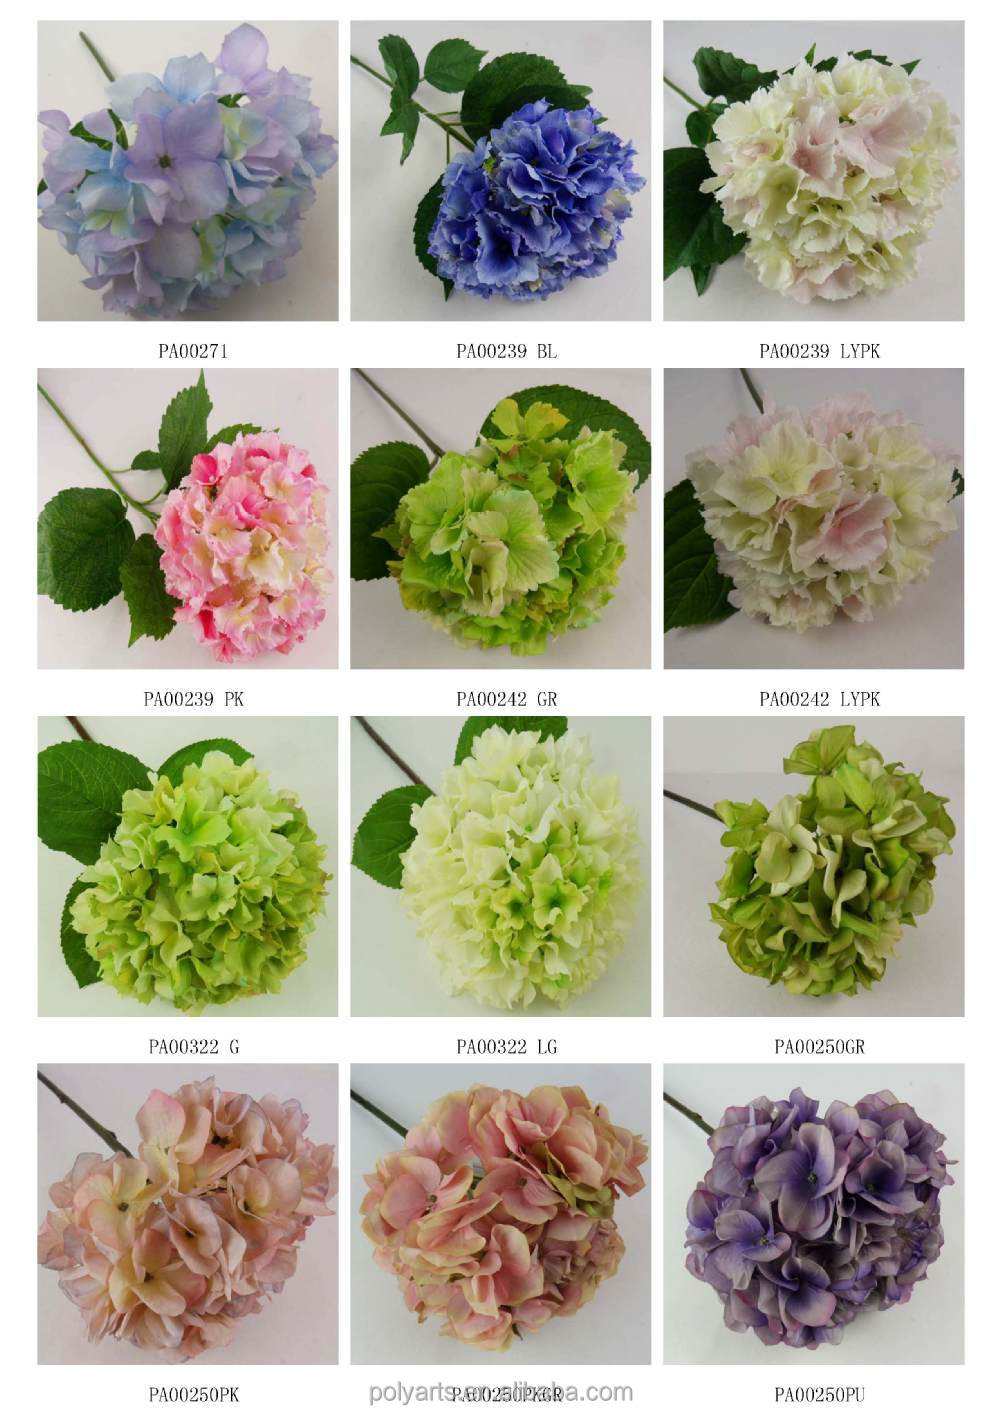 33 cone hydrangea flower lime green hydrangea flower high quality 33 cone hydrangea flower lime green hydrangea flower high quality artificial hydrangea flower mightylinksfo Images